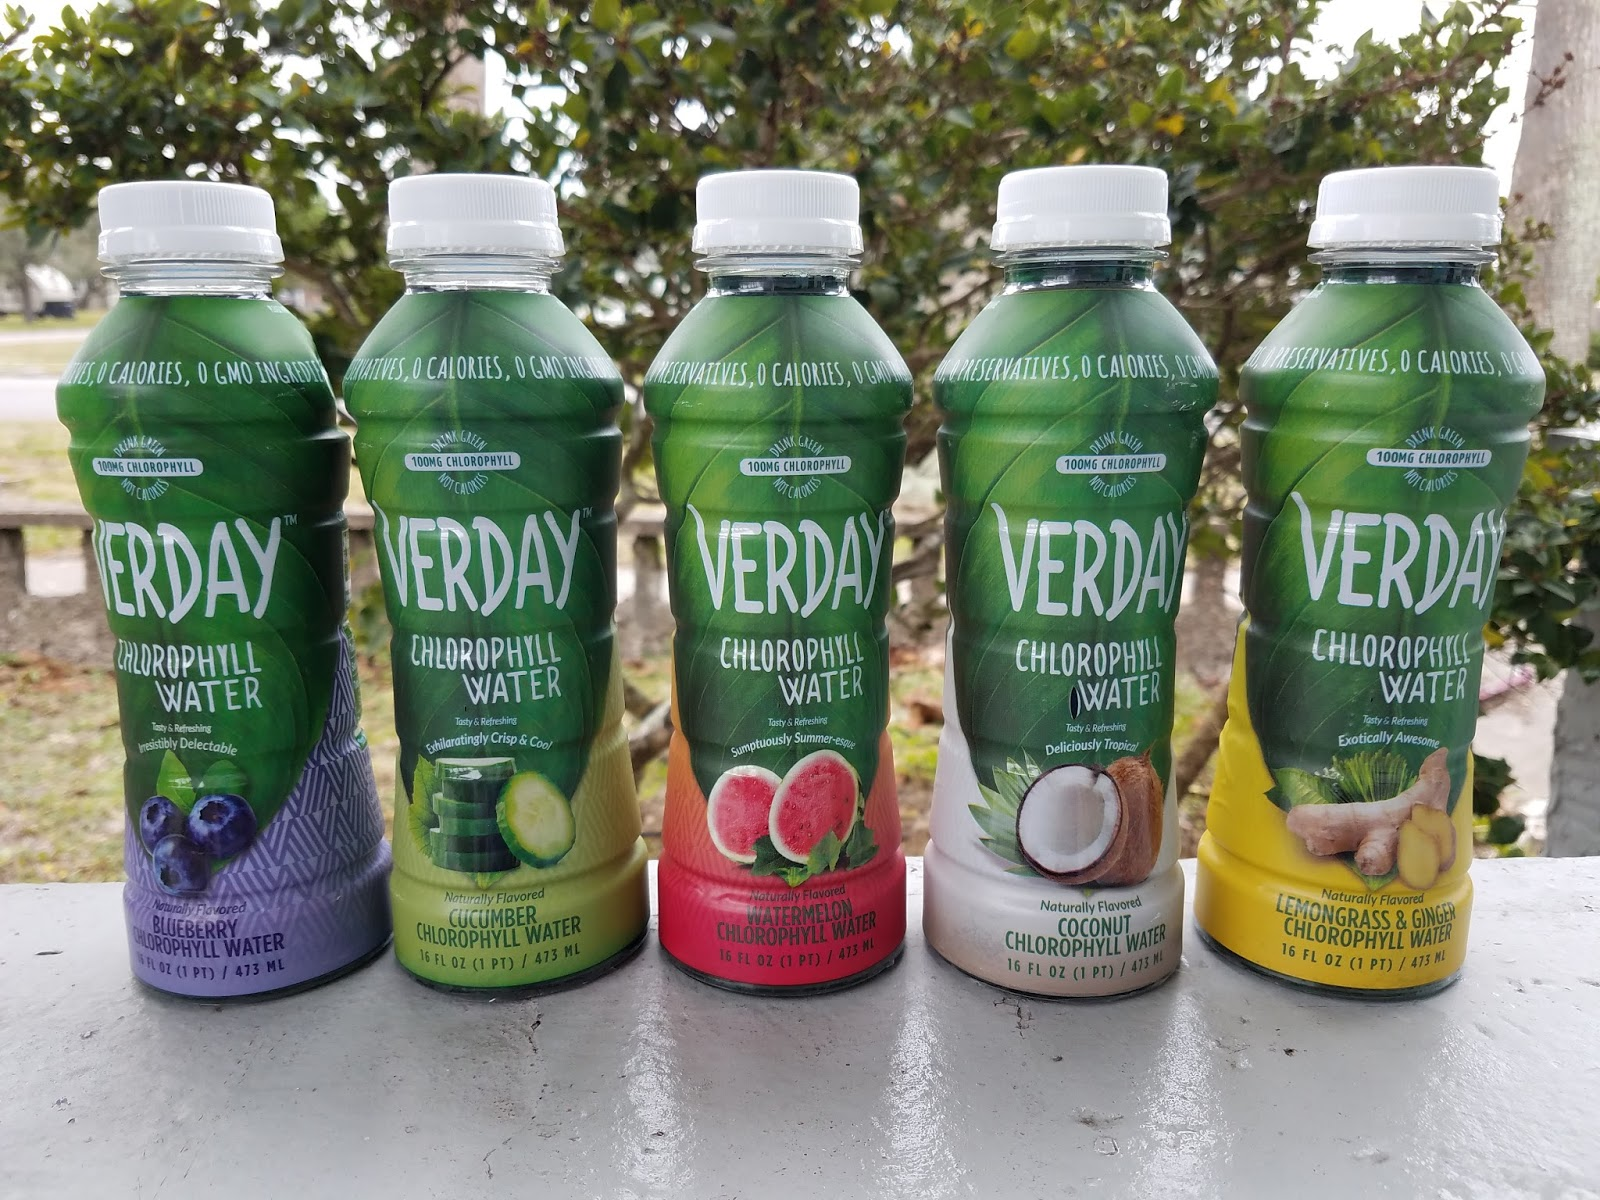 The ABCD Diaries: Stay Hydrated with Verday Chlorophyll Water!